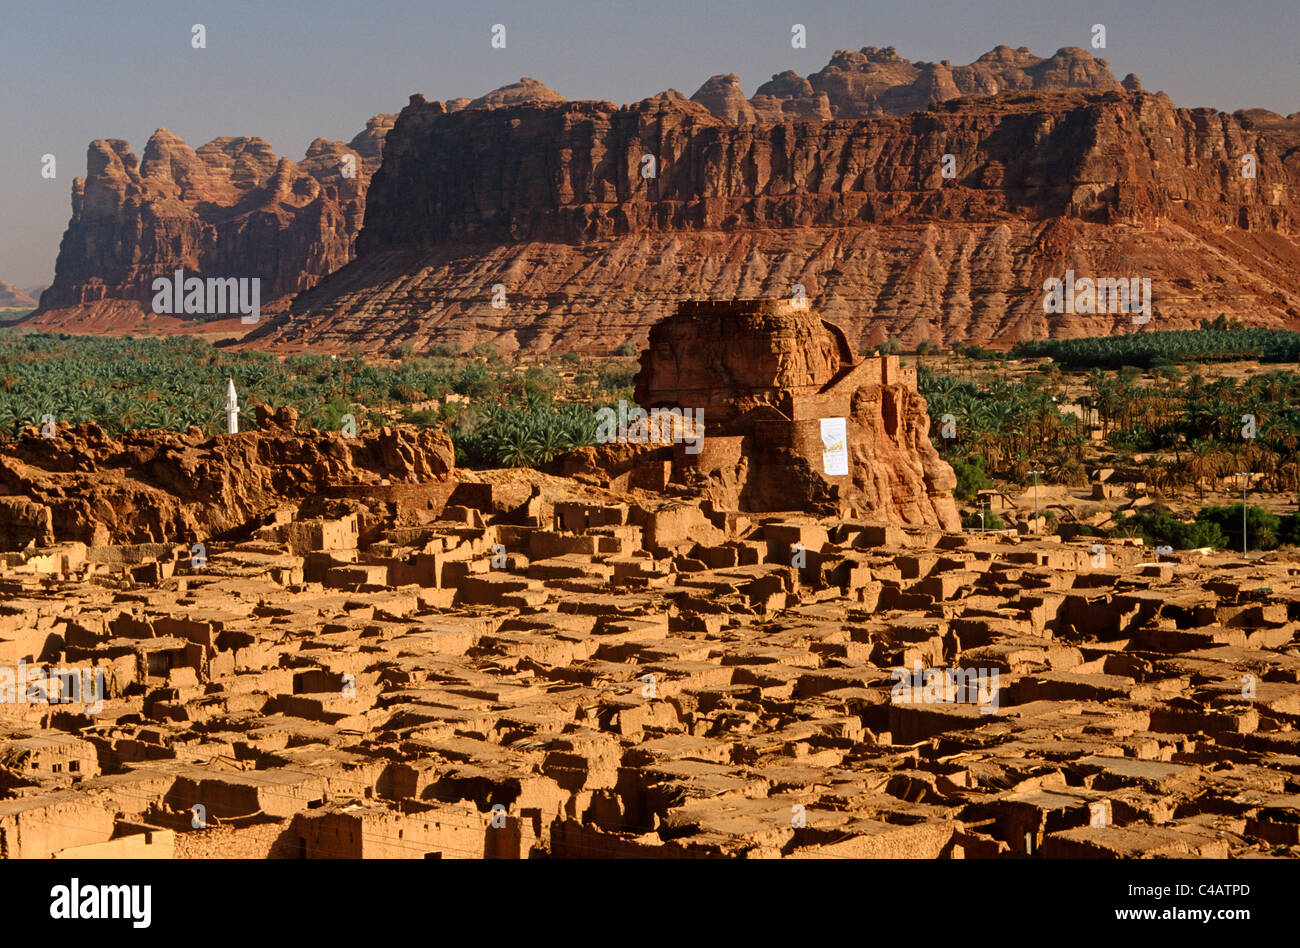 Saudi Arabia, Madinah, Al-Ula. The small yet striking castle of Musa Abdul Nasser rises in the midst of the crumblingStock Photo